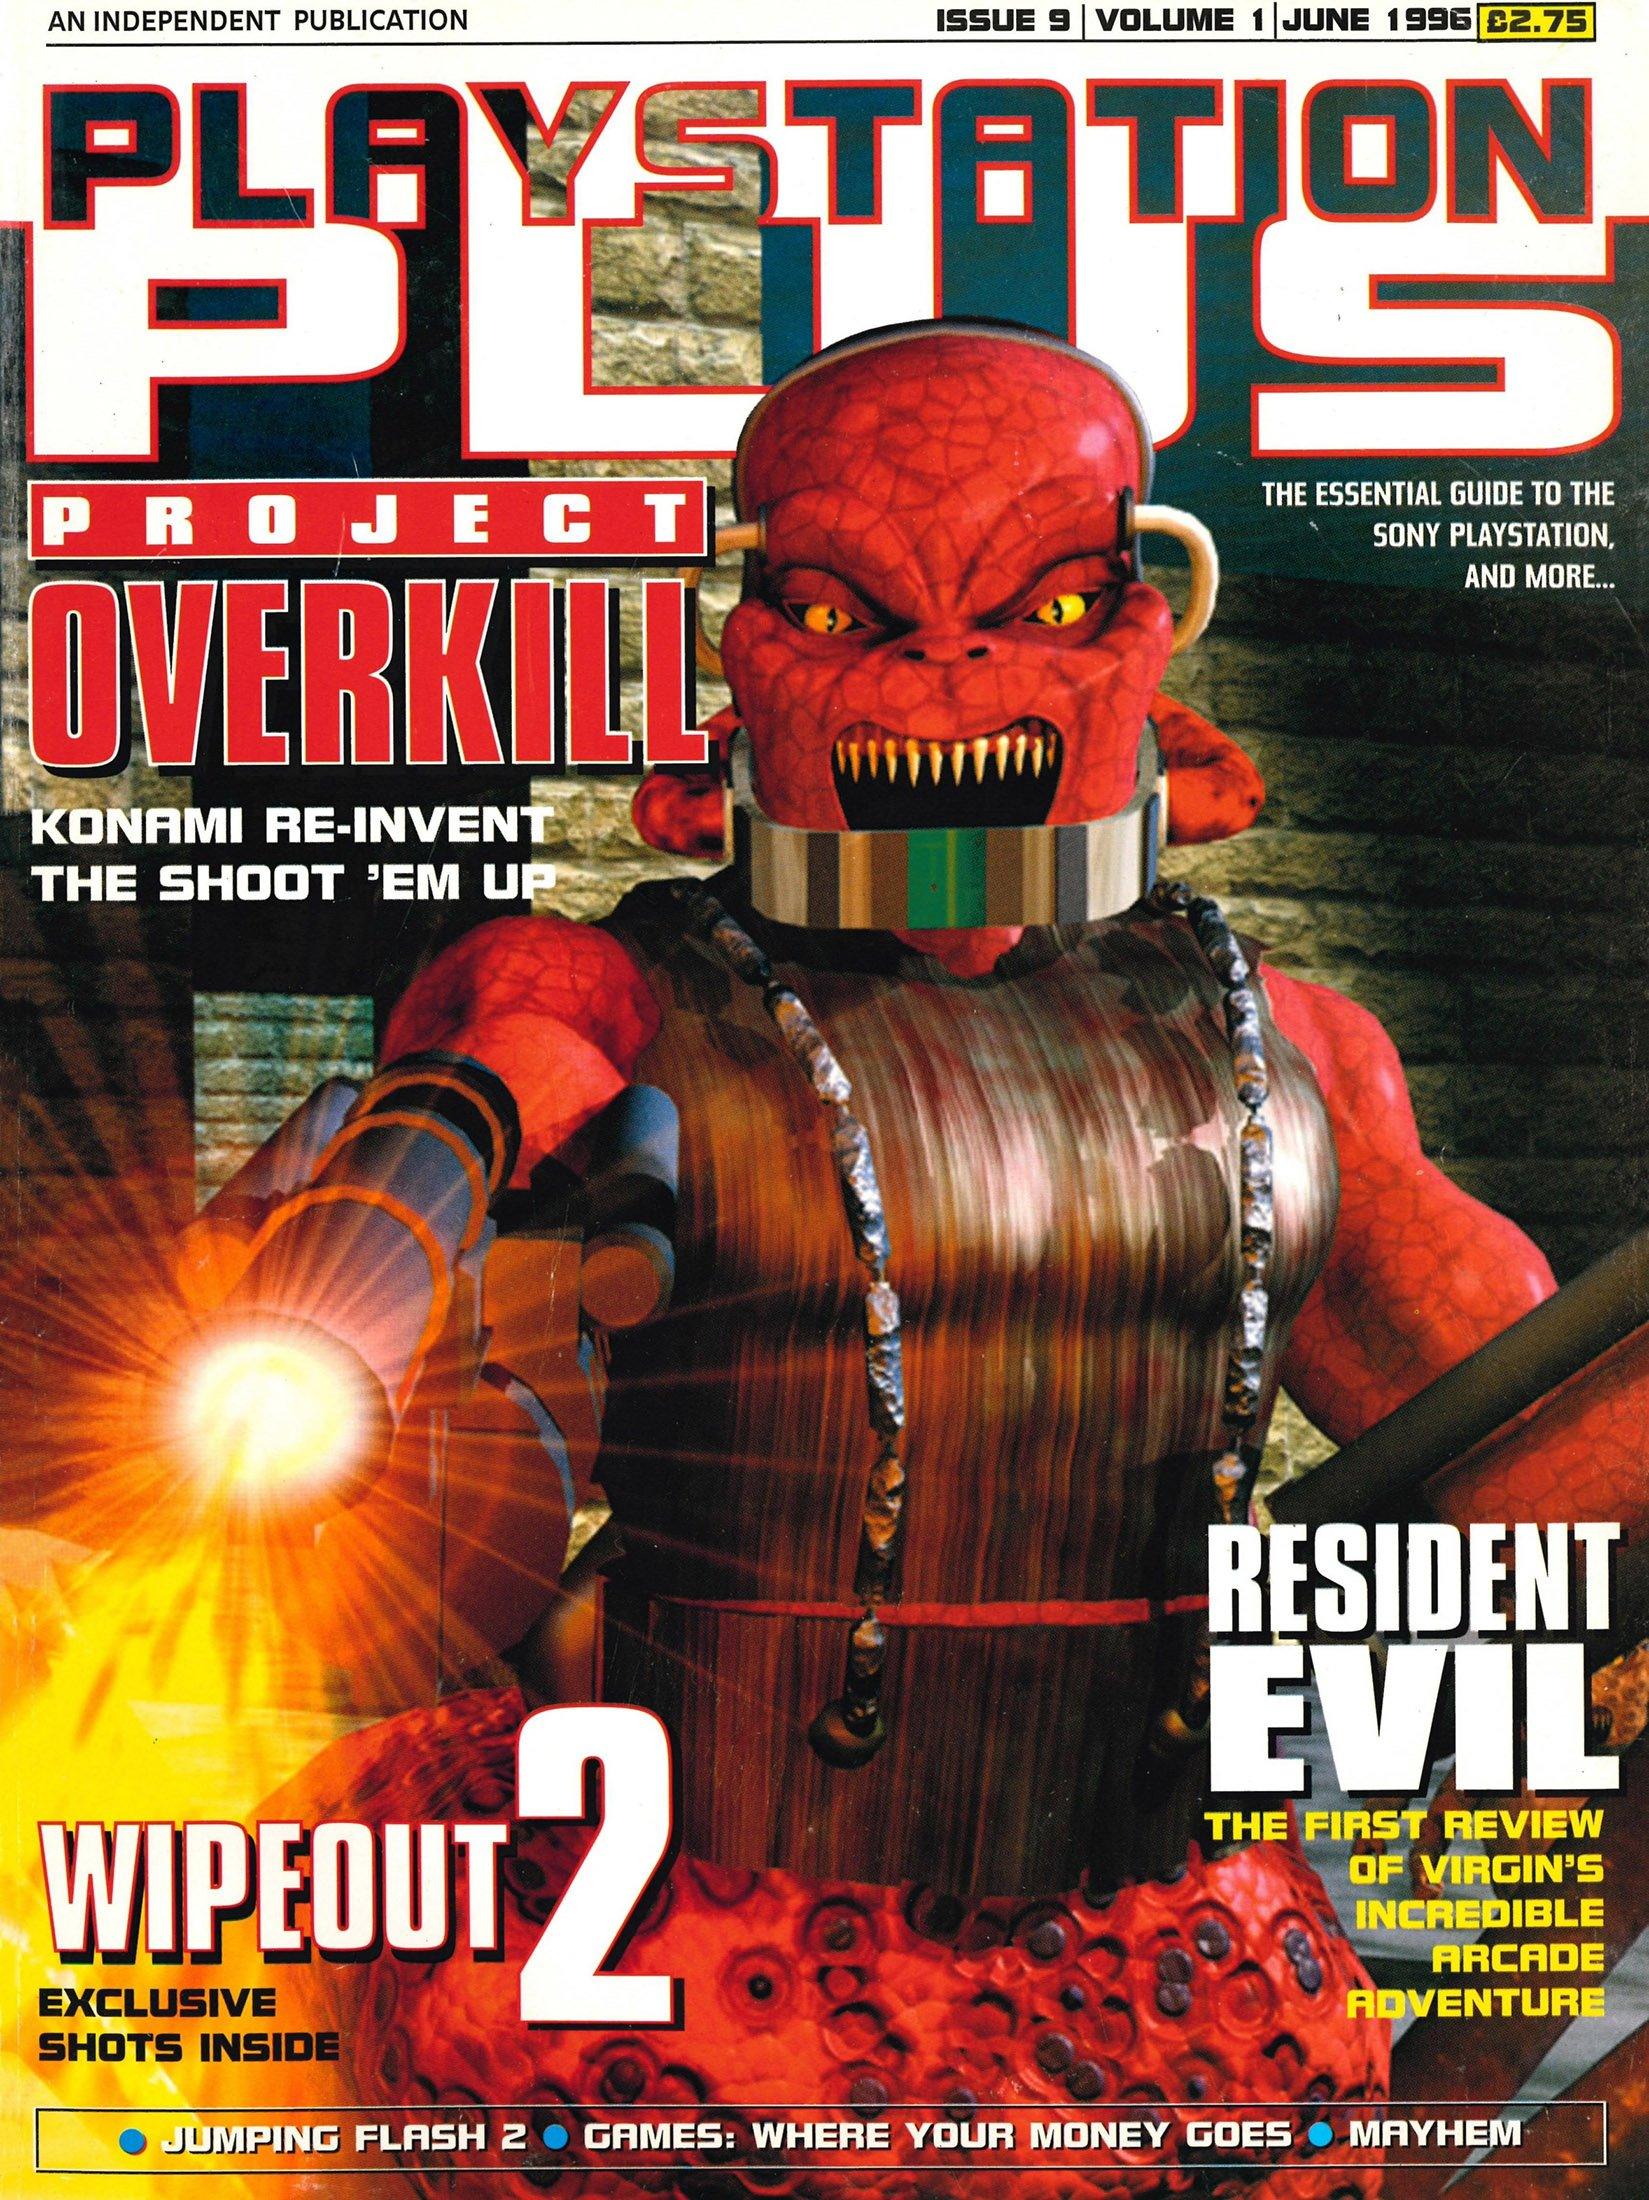 PlayStation Plus Issue 009 (June 1996)